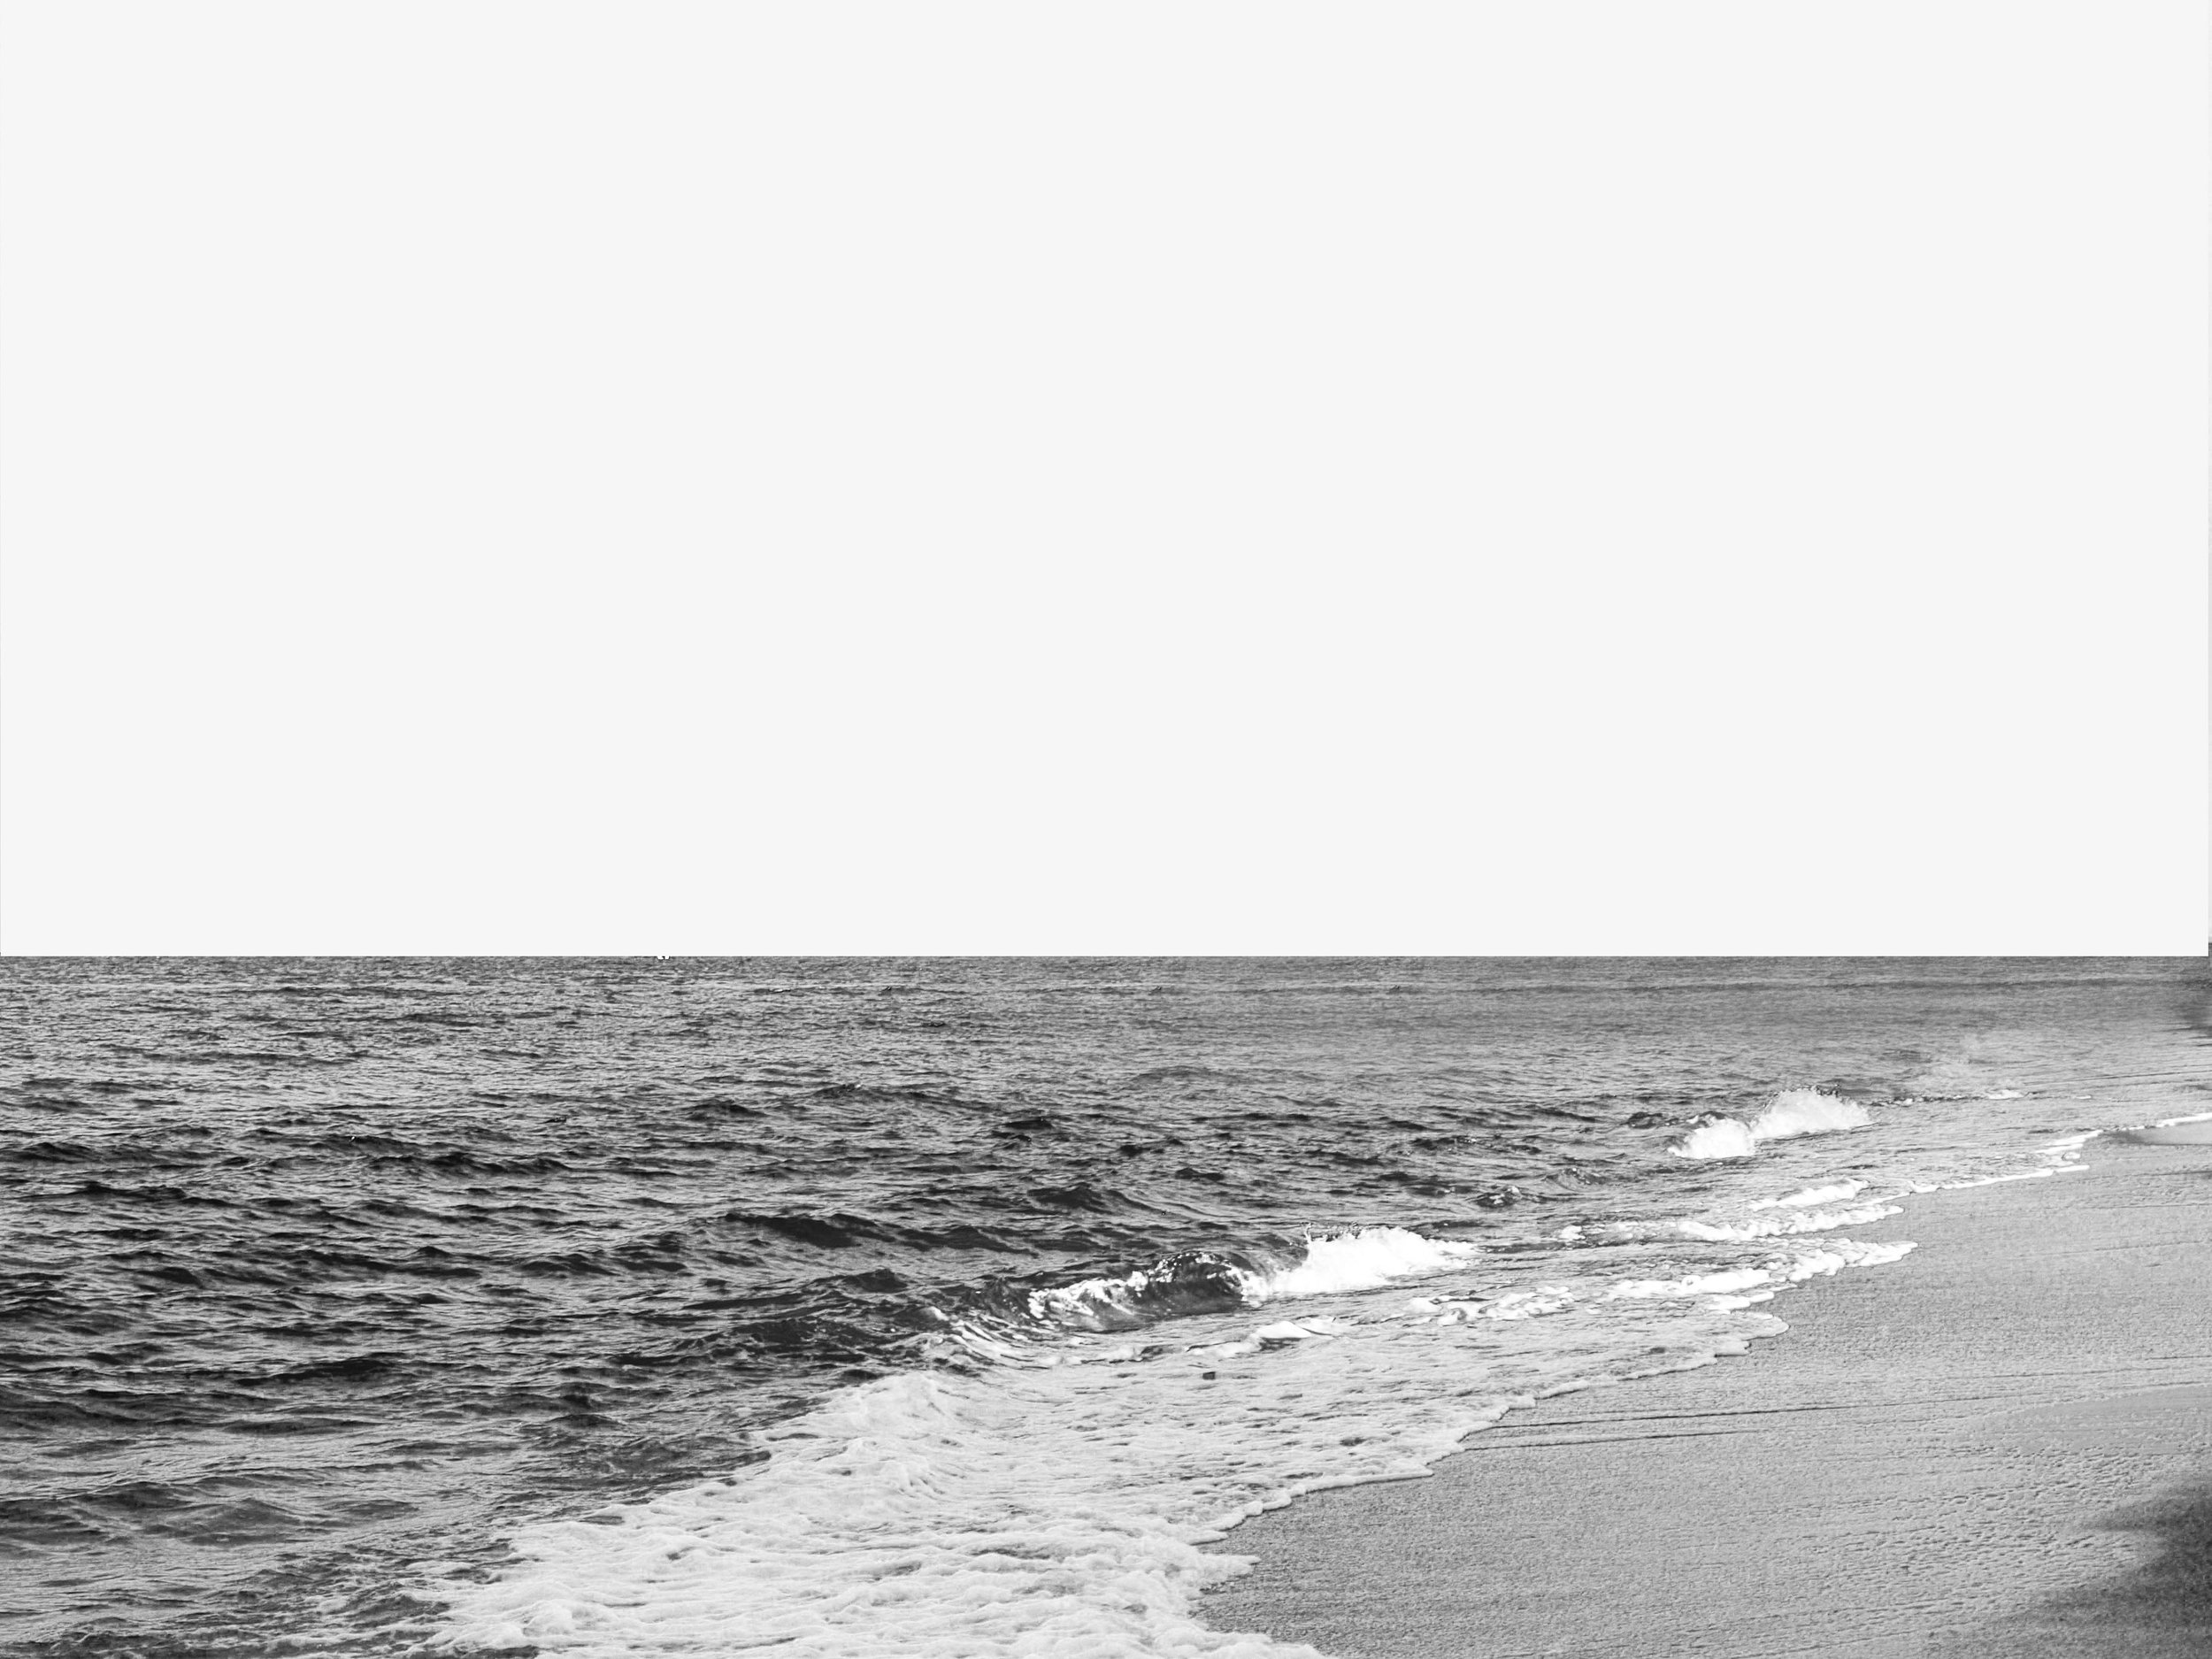 abstract_black_and_white_ocean_photography.JPG